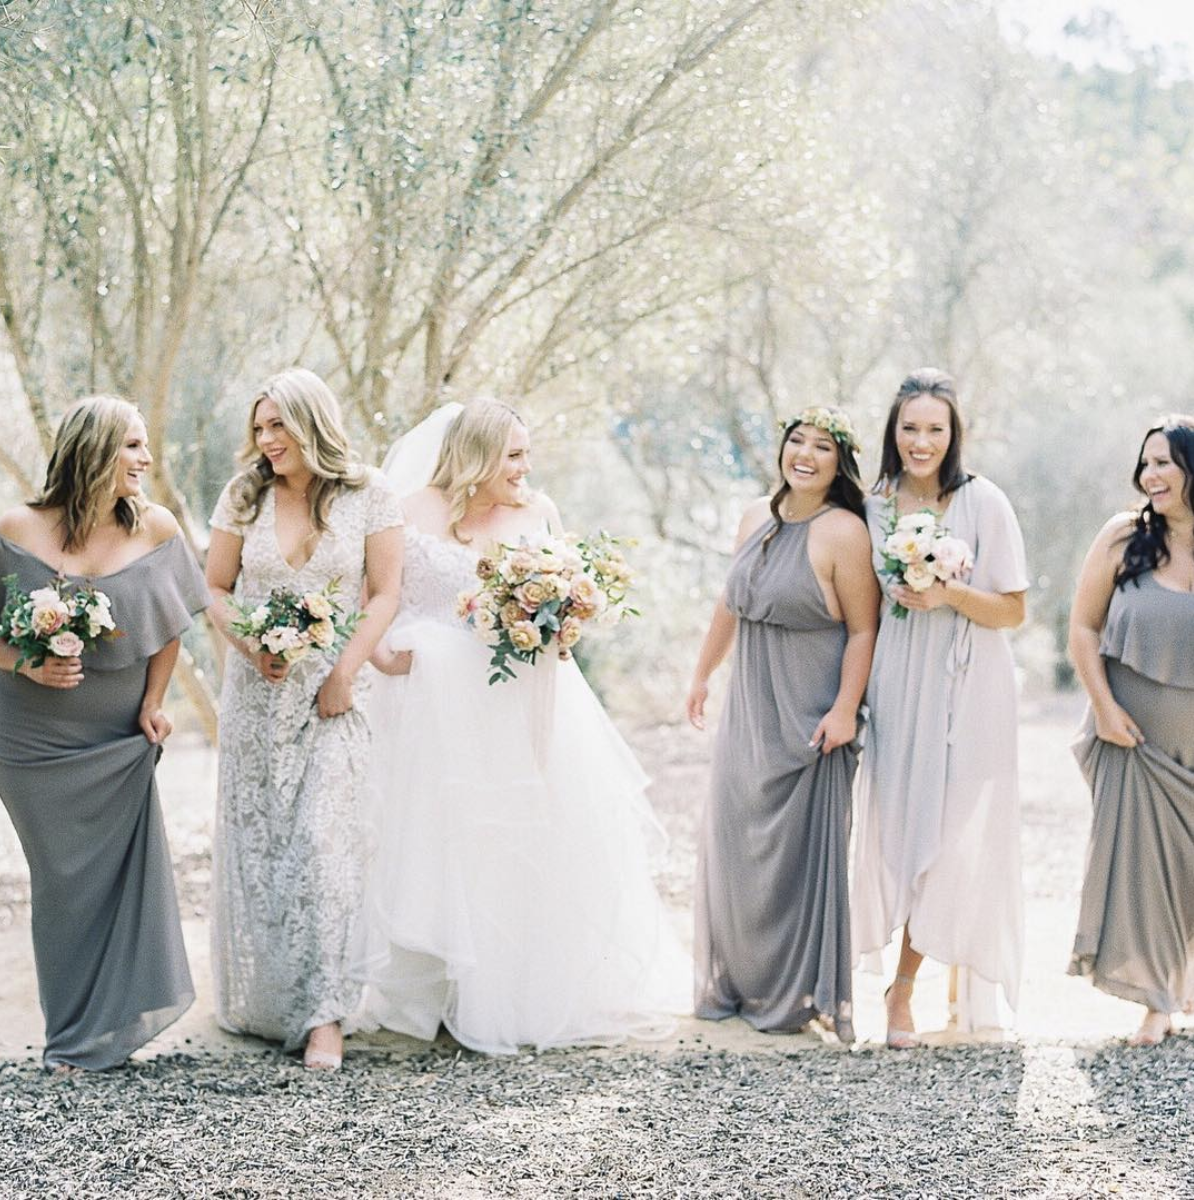 Shades of Gray Bridal Party